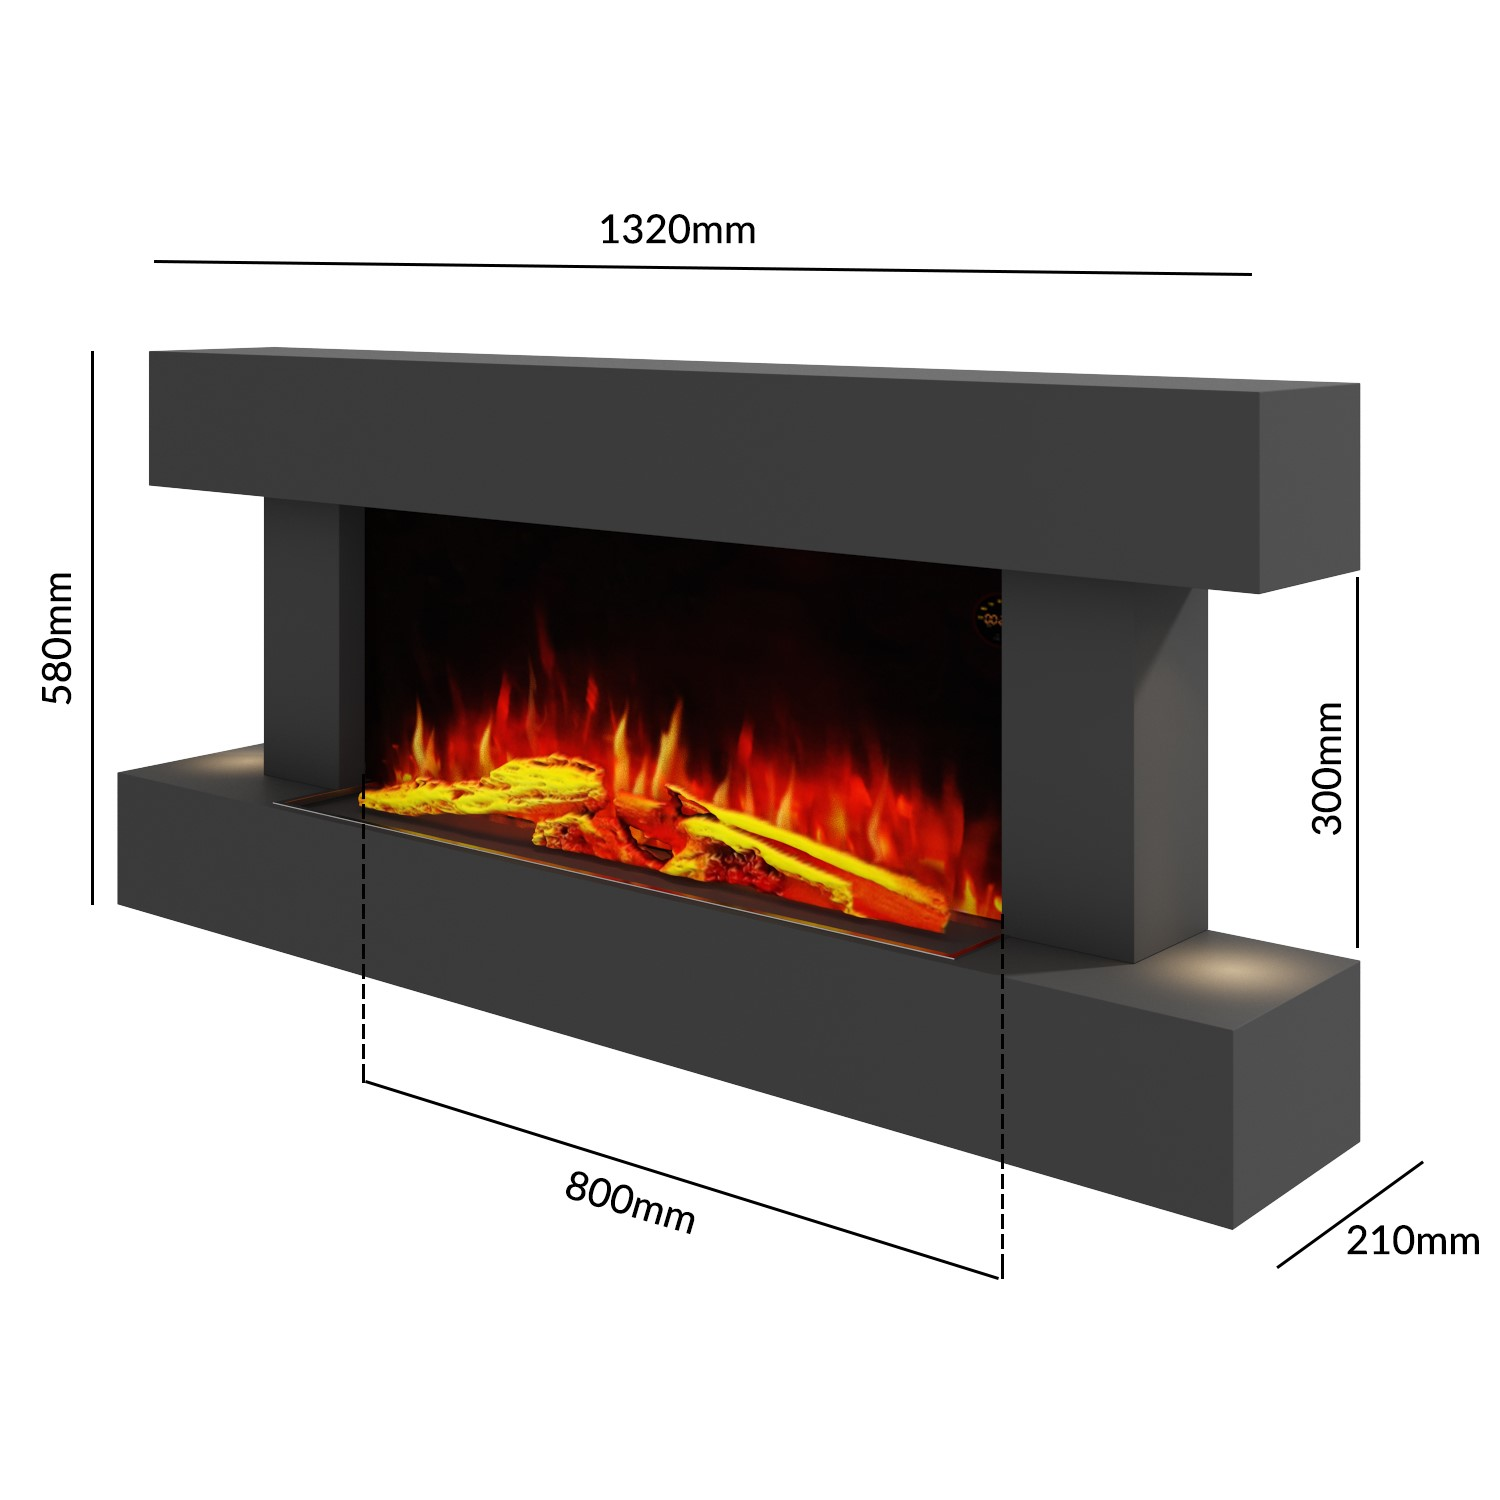 Amberglo Grey Wall Mounted Electric Fireplace Suite With Log Pebble Fuel Bed Agl010g Appliances Direct